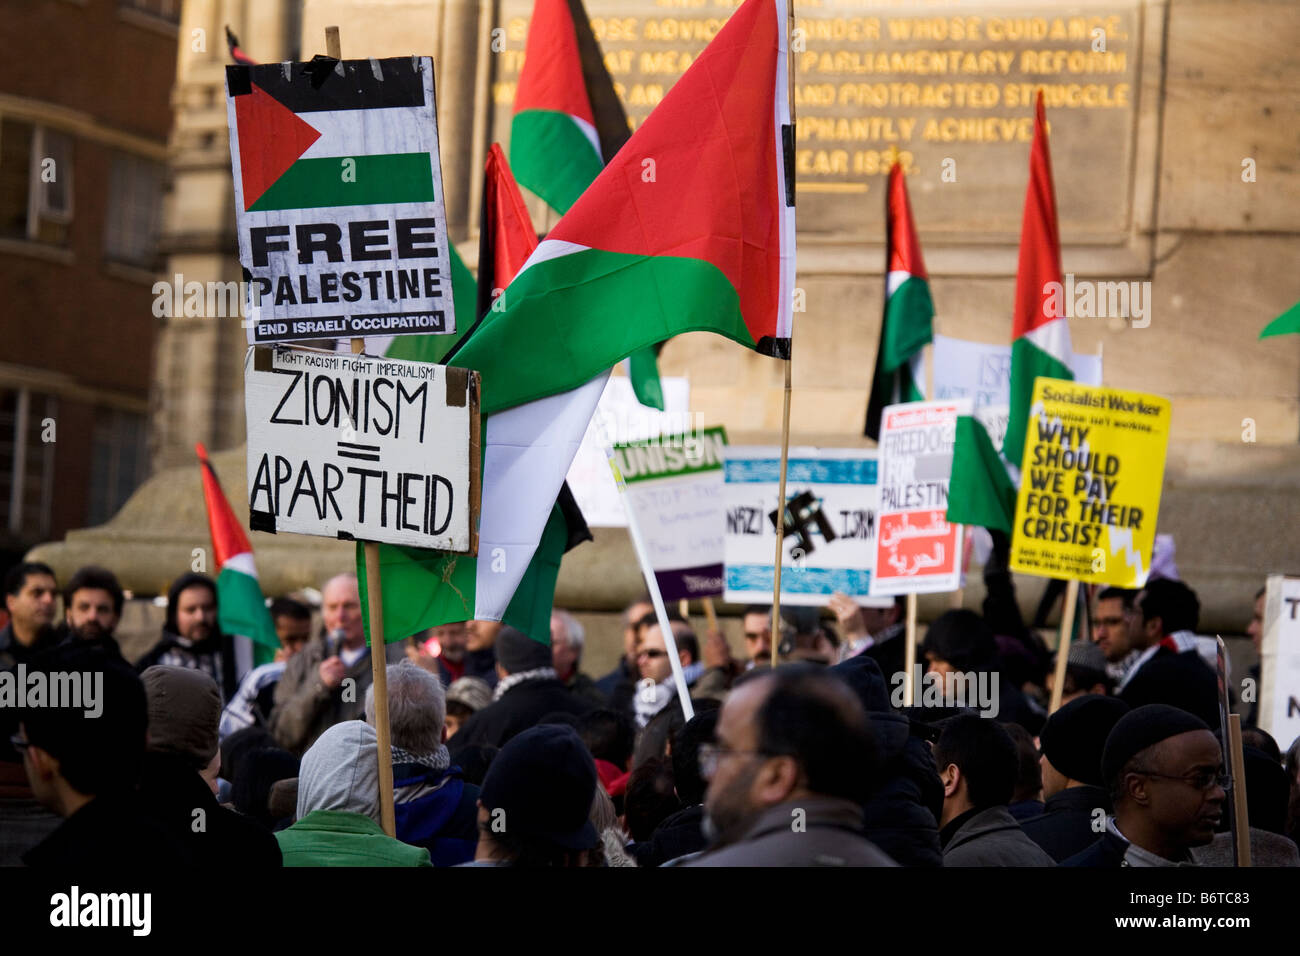 A placard at a demonstration in central Newcastle, England, compares Zionism to Apartheid. - Stock Image